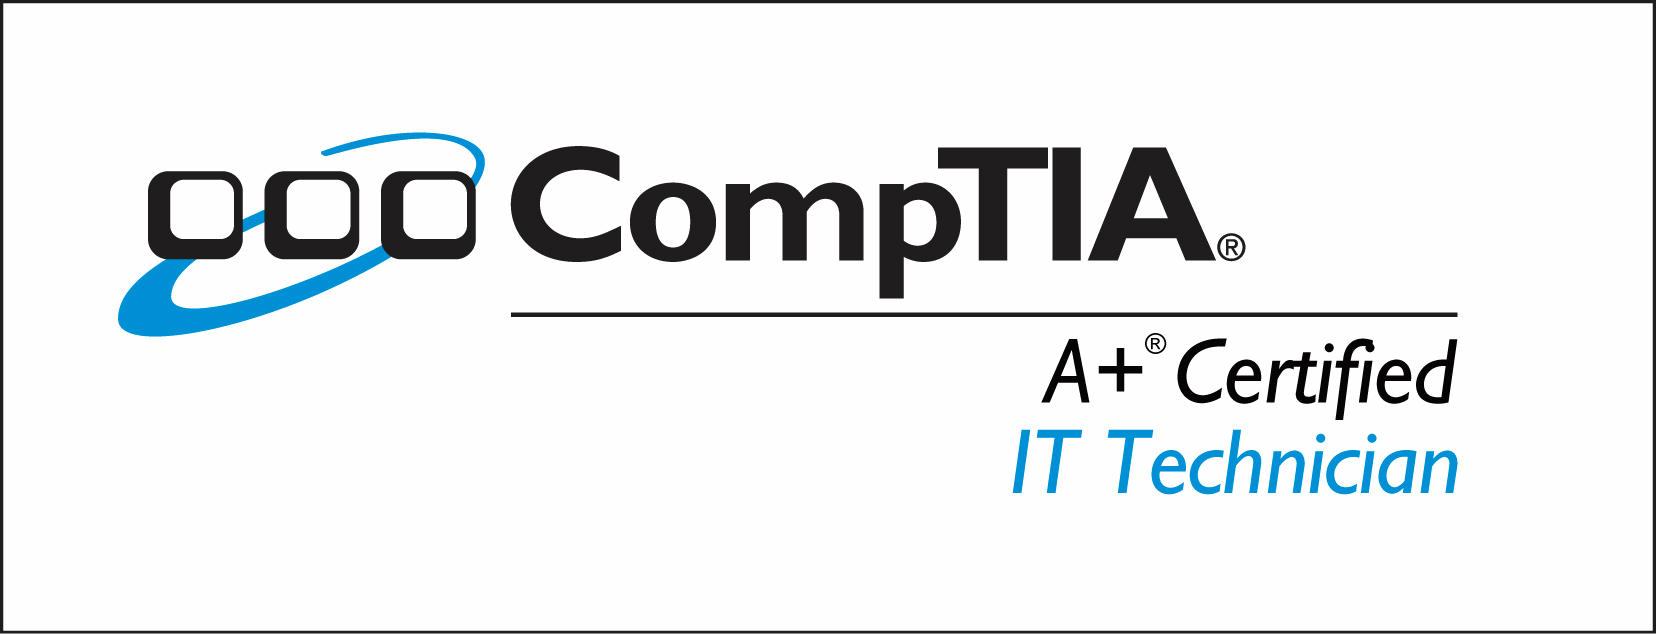 Networking compTIA